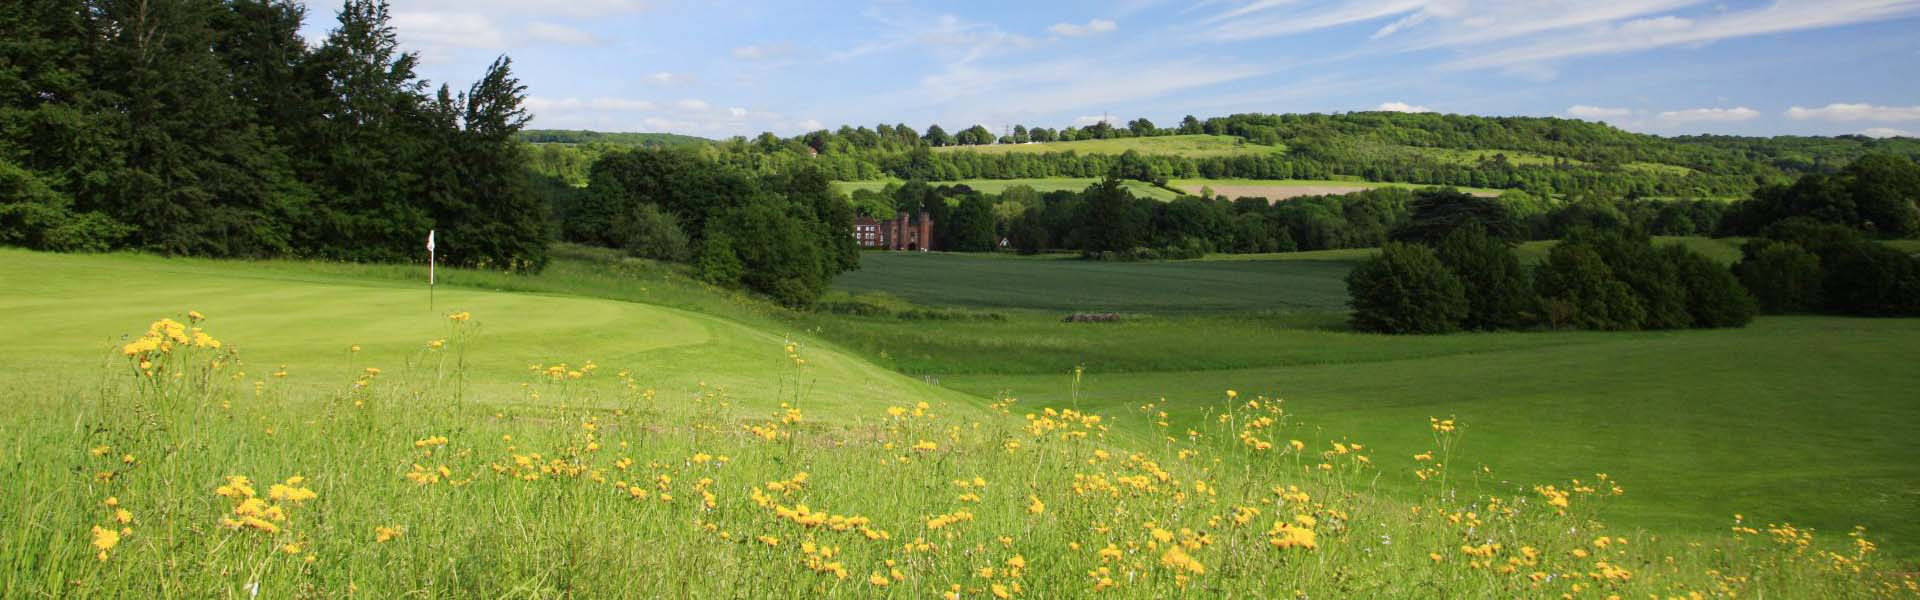 View of Lullingstone Castle from the golf course